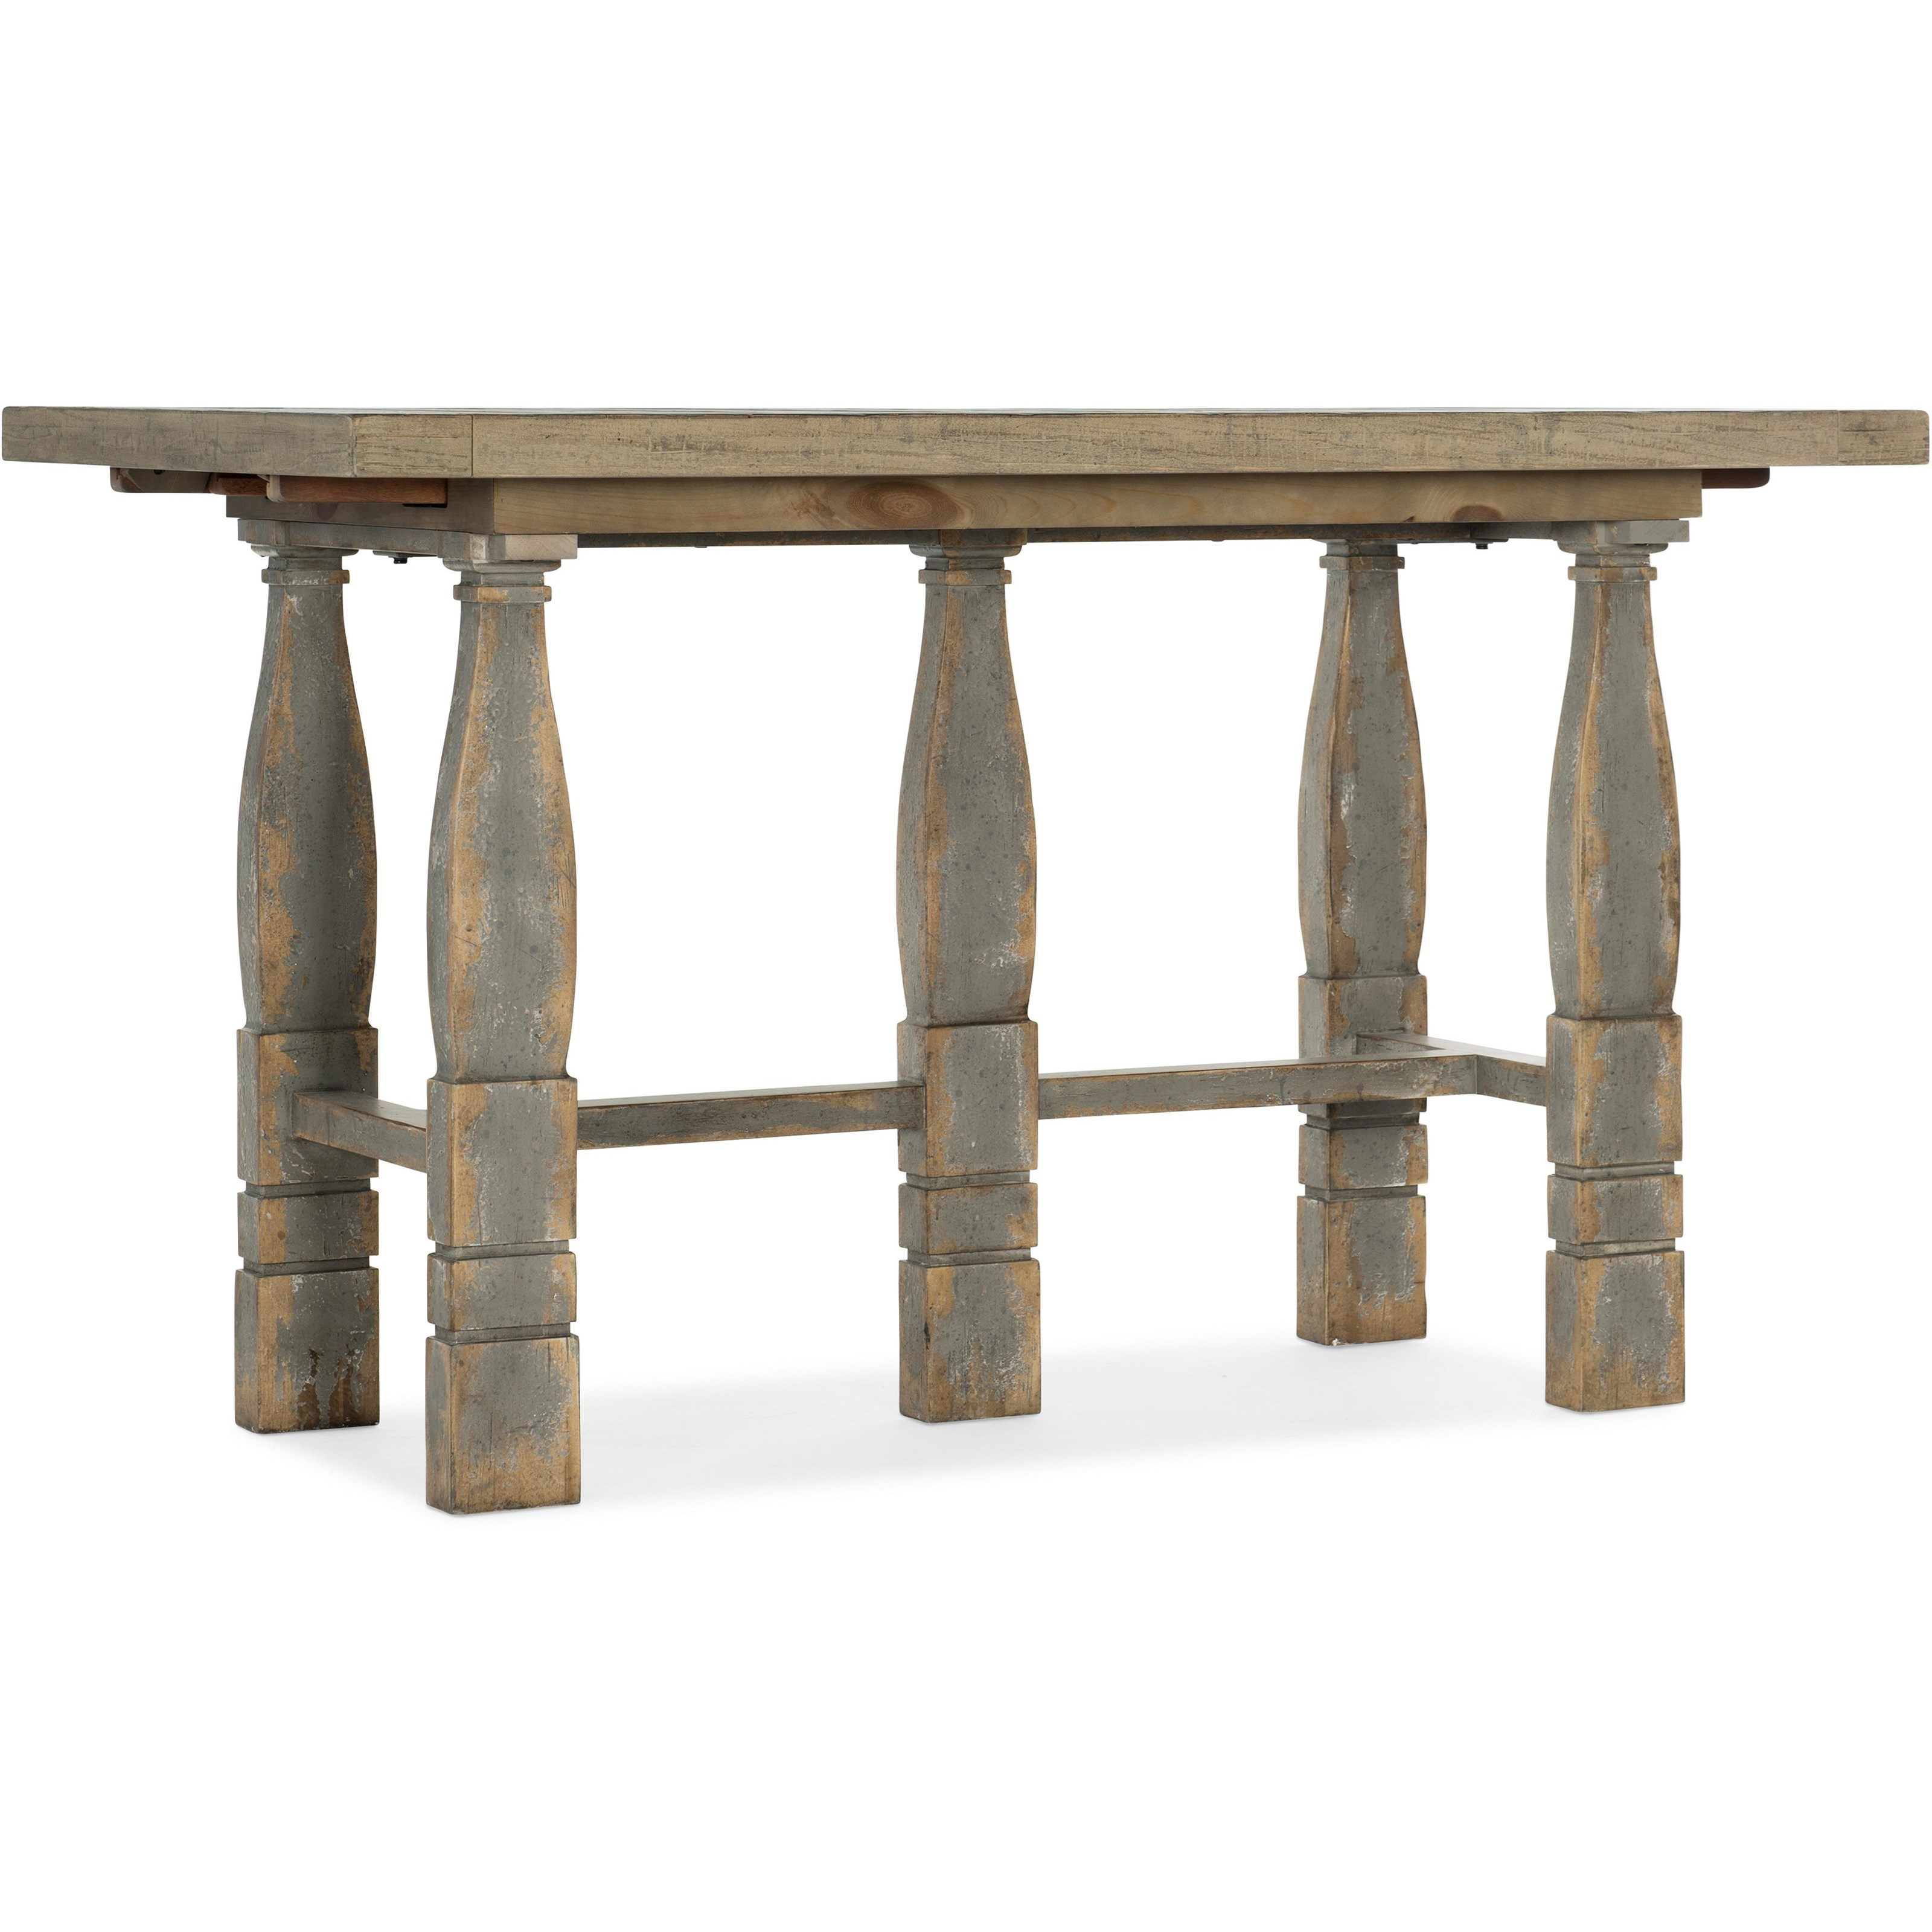 Two-Tone Friendship Table with Leaves